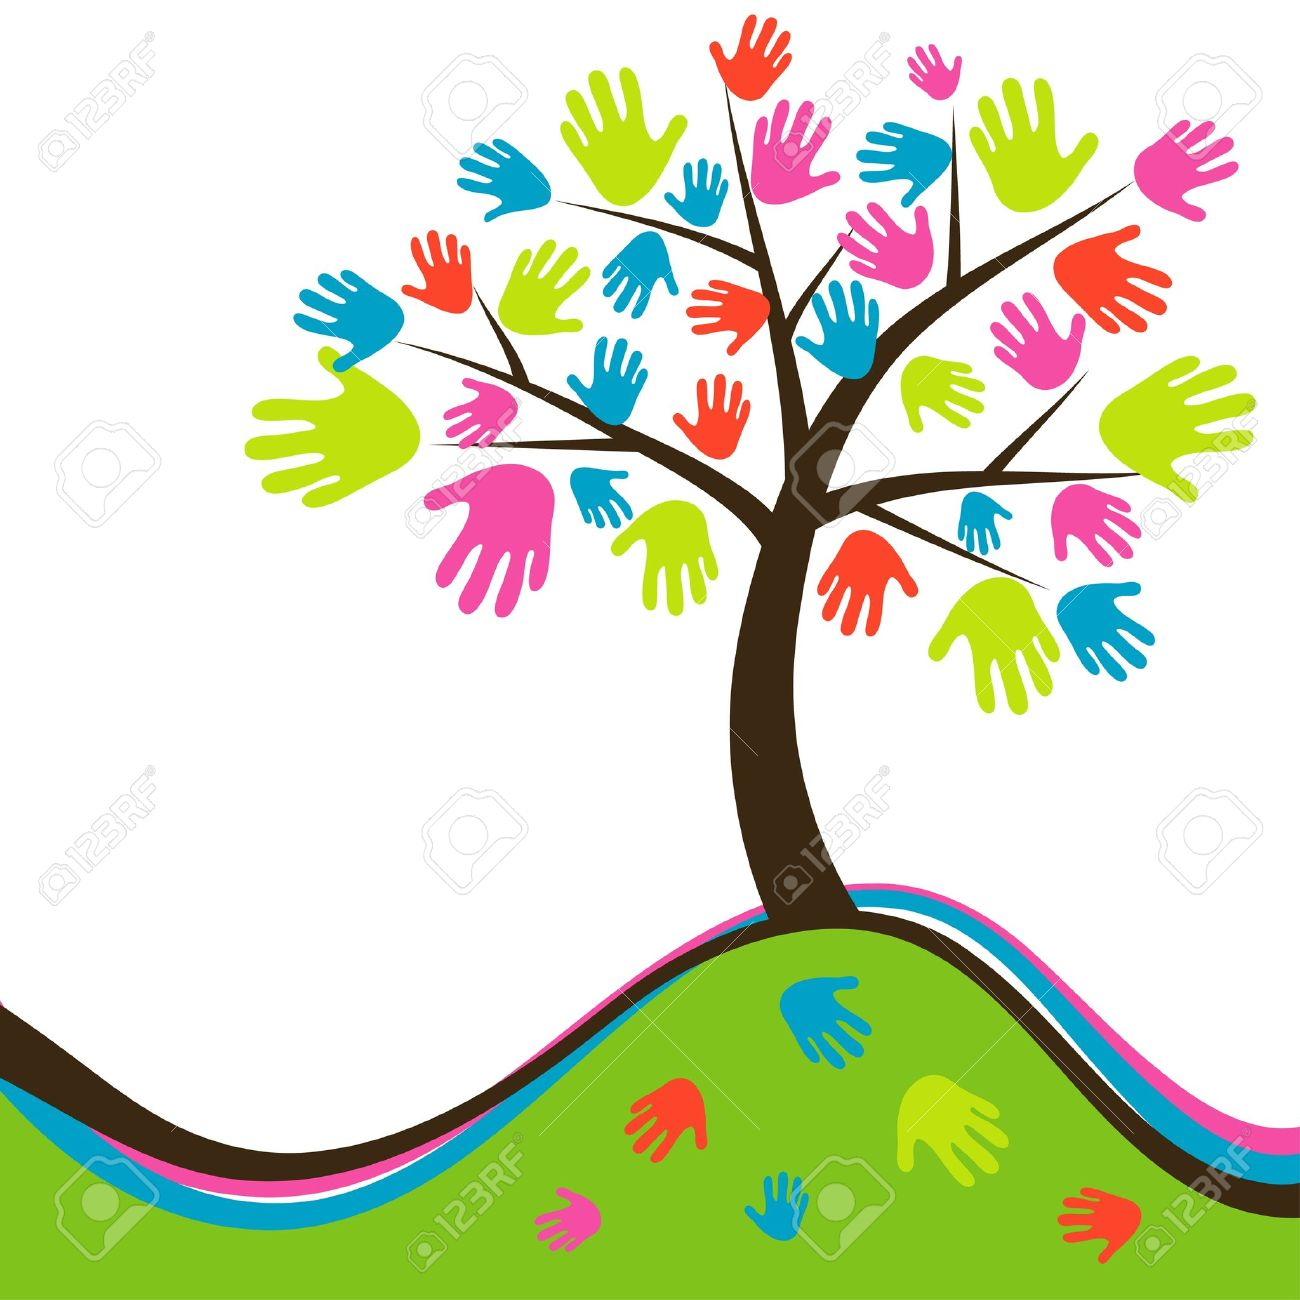 59 Fingerprint Tree Cliparts, Stock Vector And Royalty Free.